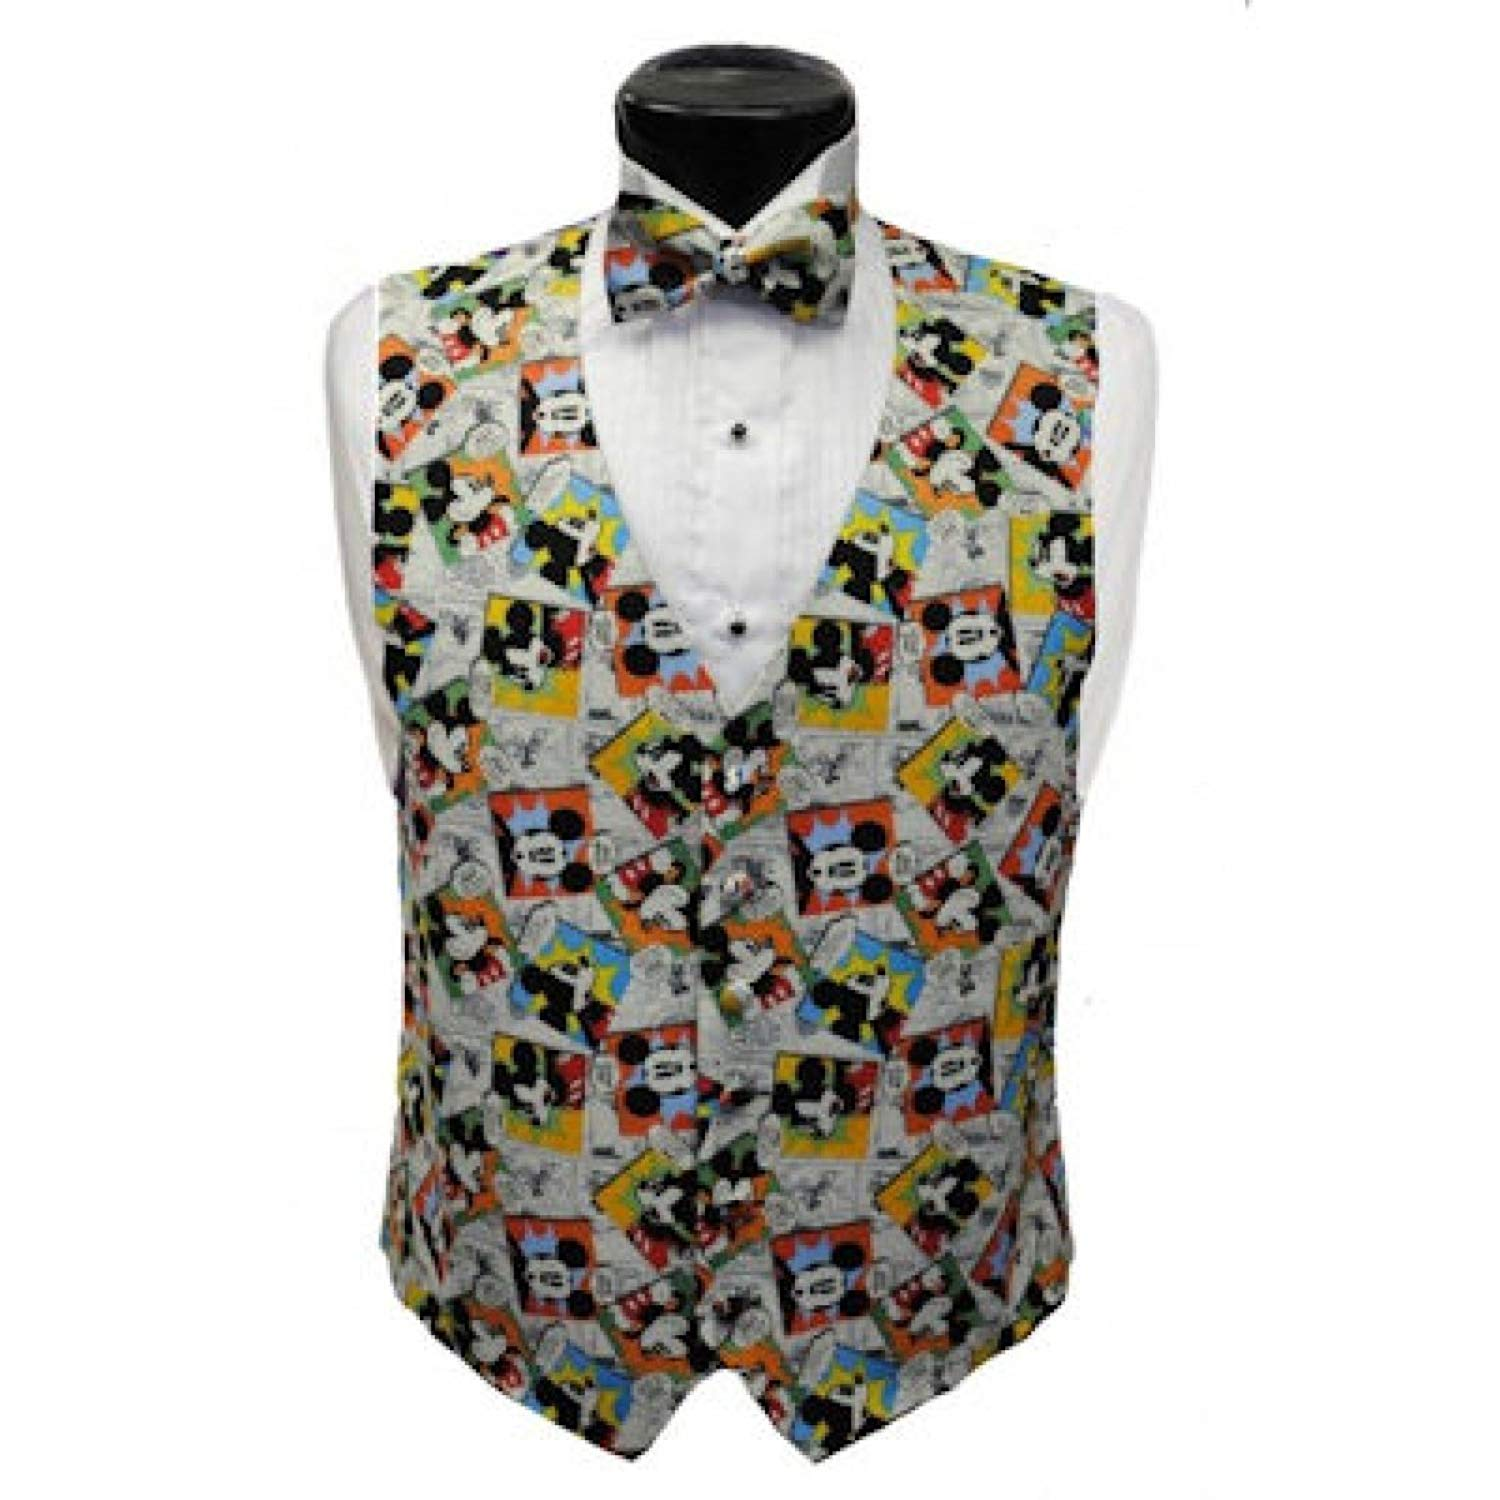 b1b7e7ecf2b7 Cheap Mickey Mouse Tie, find Mickey Mouse Tie deals on line at ...